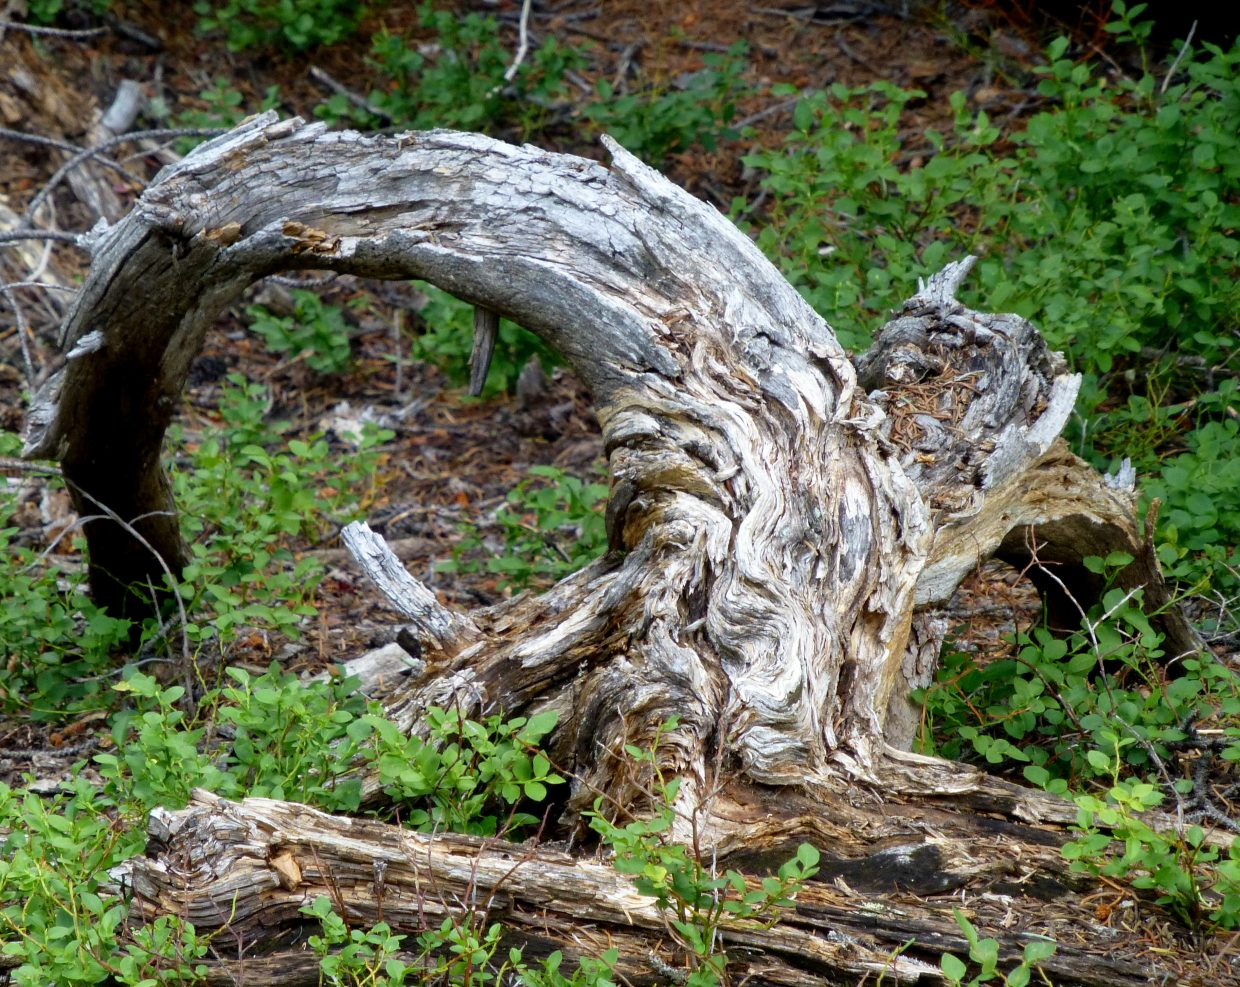 Interesting stump. Submitted by: Gail Hanley